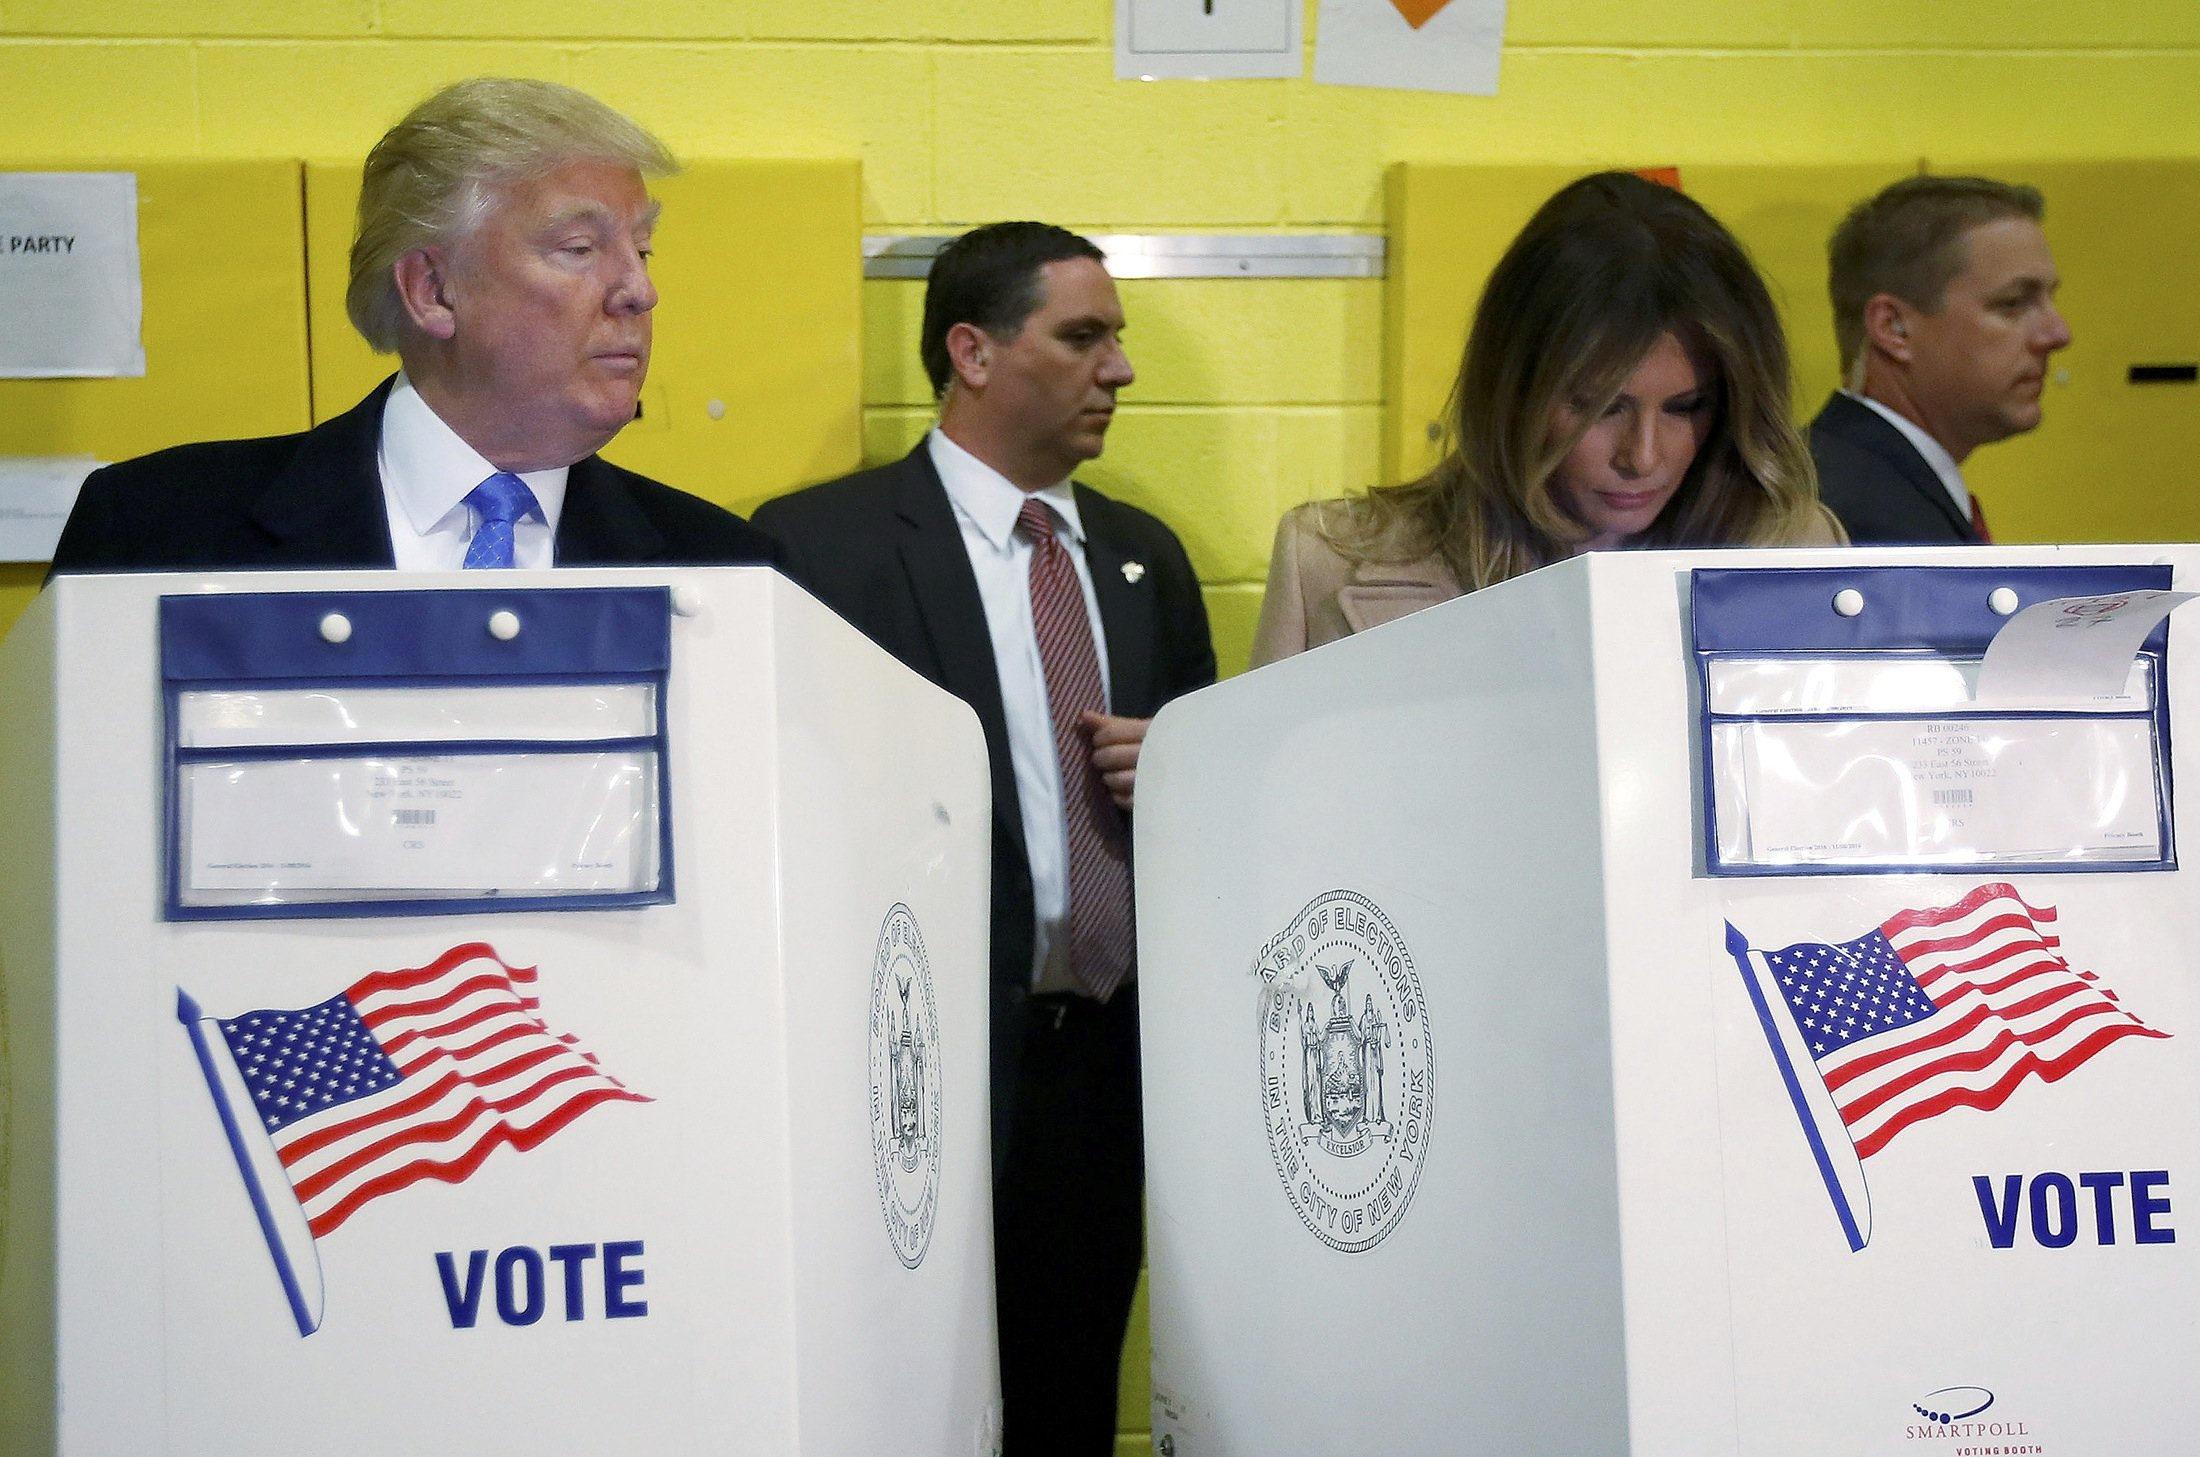 Donald Trump and his wife Melania vote at PS 59 school in New York City.